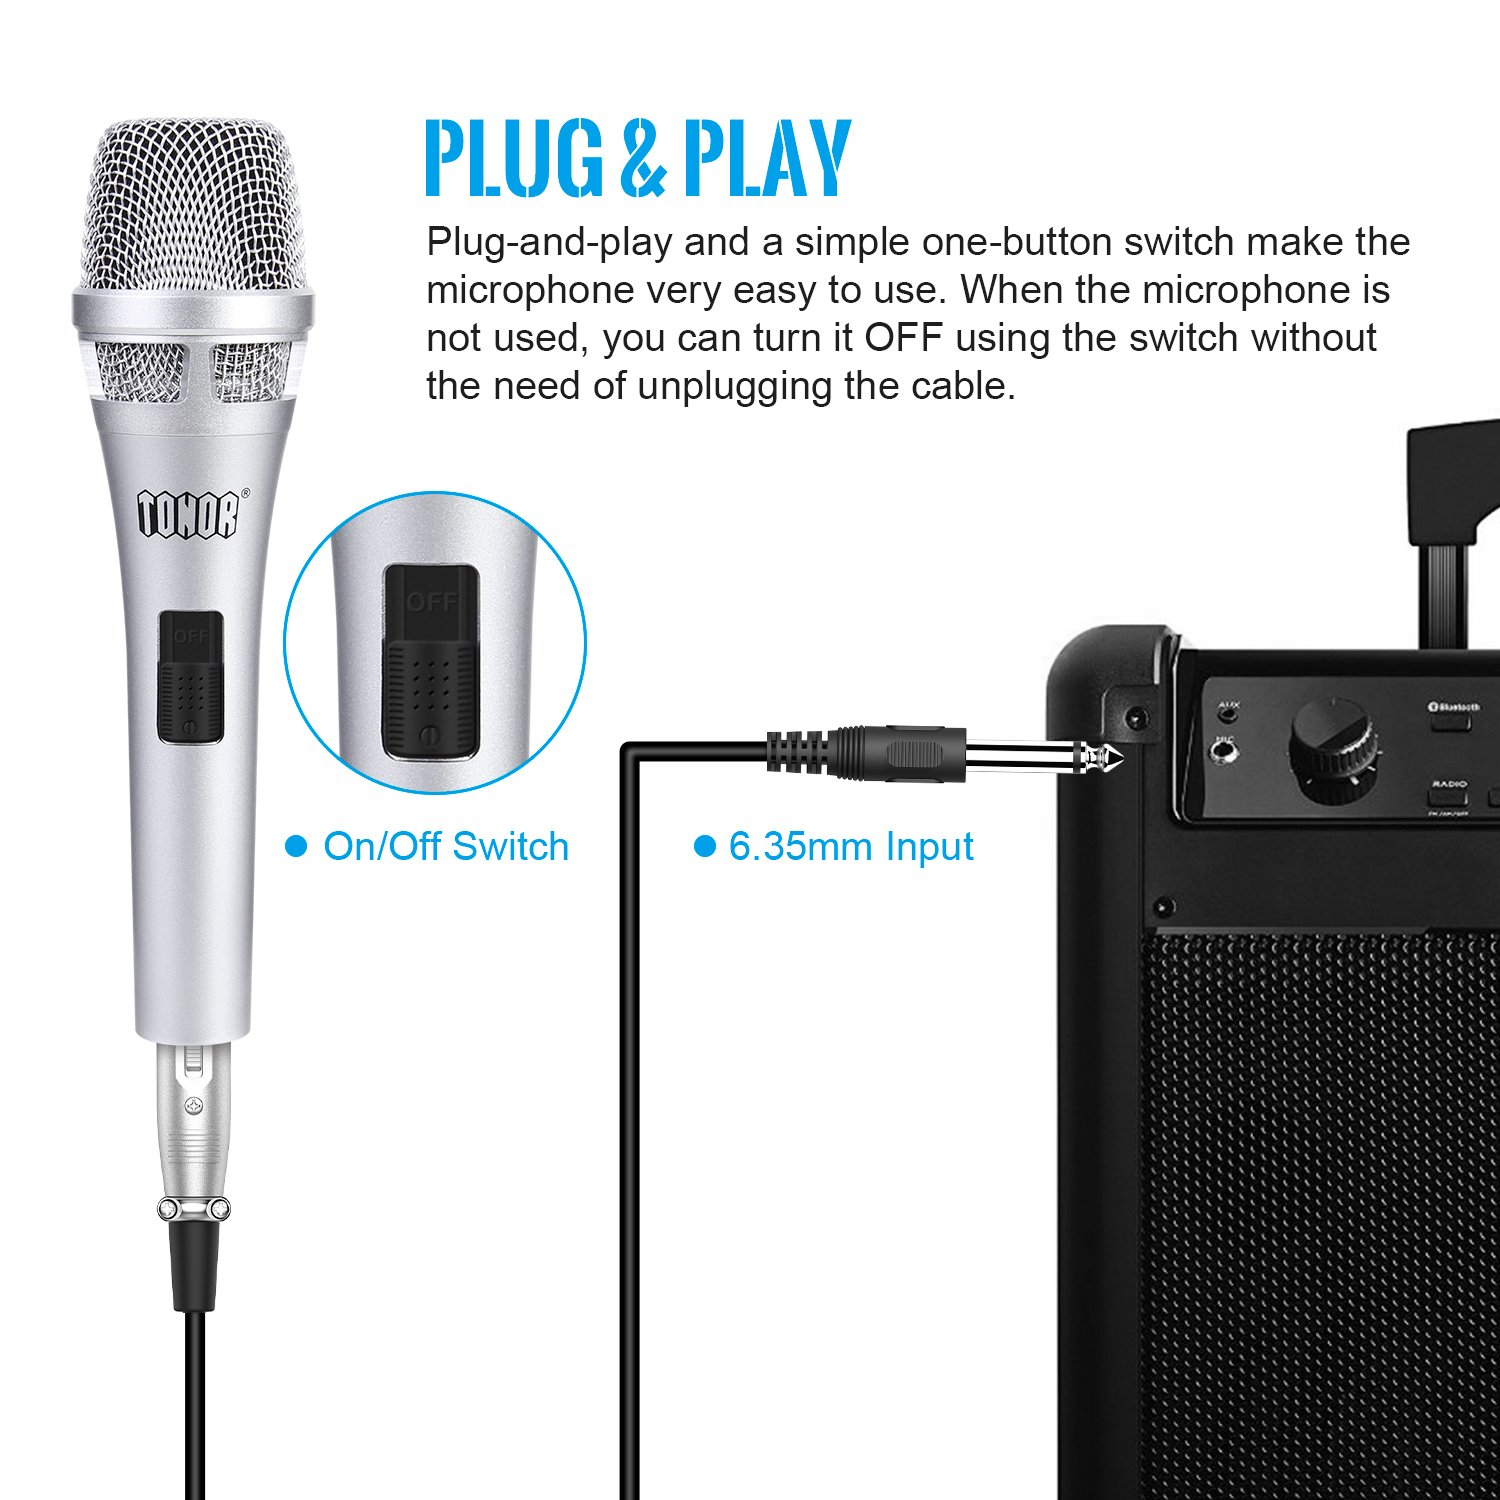 Amazon.com: TONOR Microphone Wired Dynamic Vocal Cardioid Handheld ...